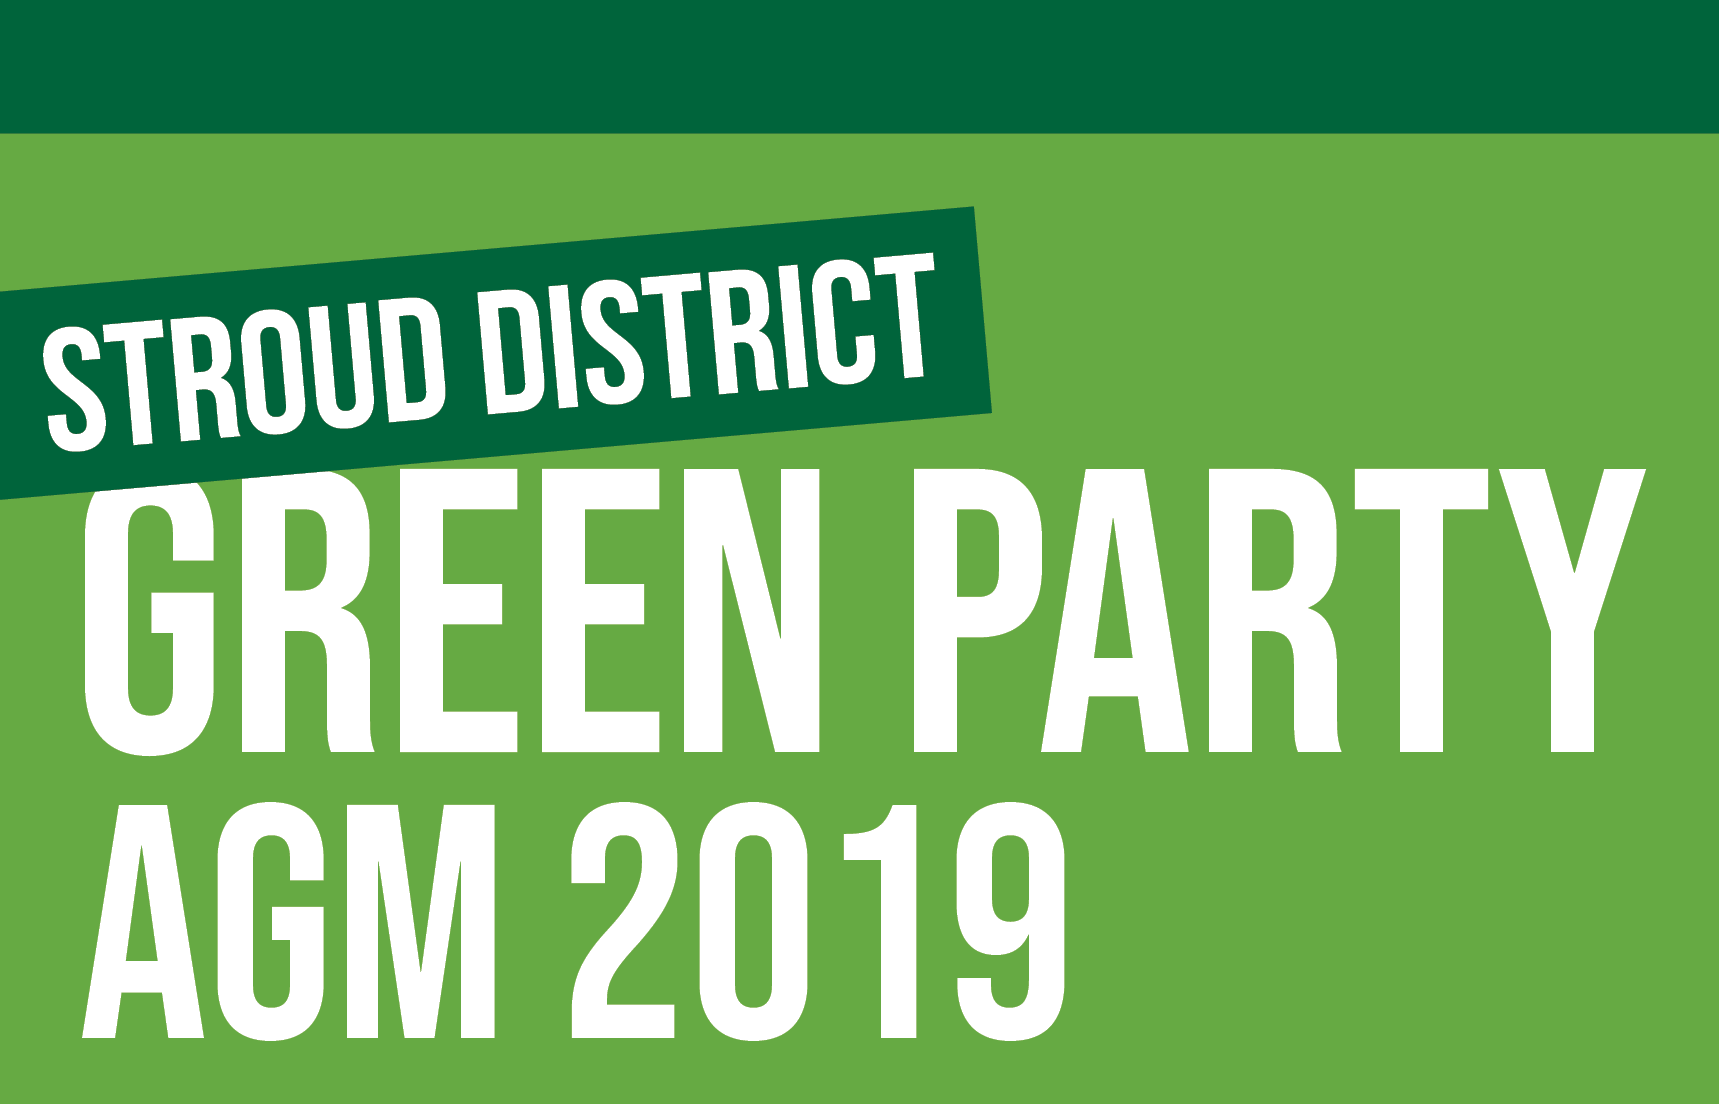 Stroud District Green Party AGM